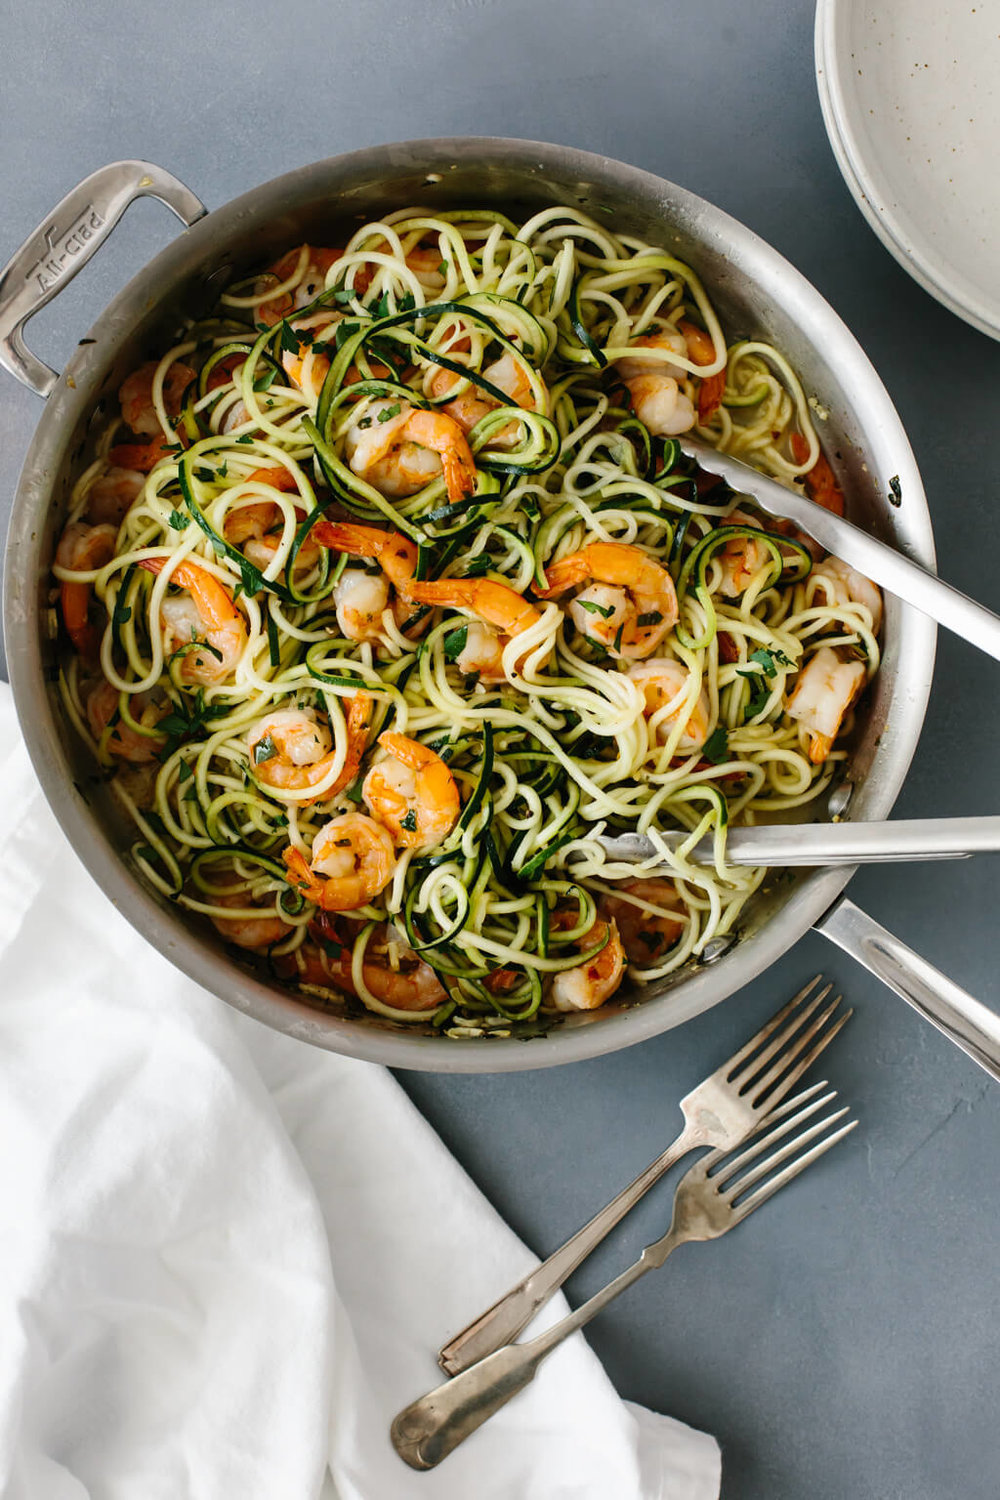 Zucchini Pasta with Lemon garlic shrimp - Recipe from: DownshiftologyUse ghee instead of butter and broth instead of white wine to keep whole30